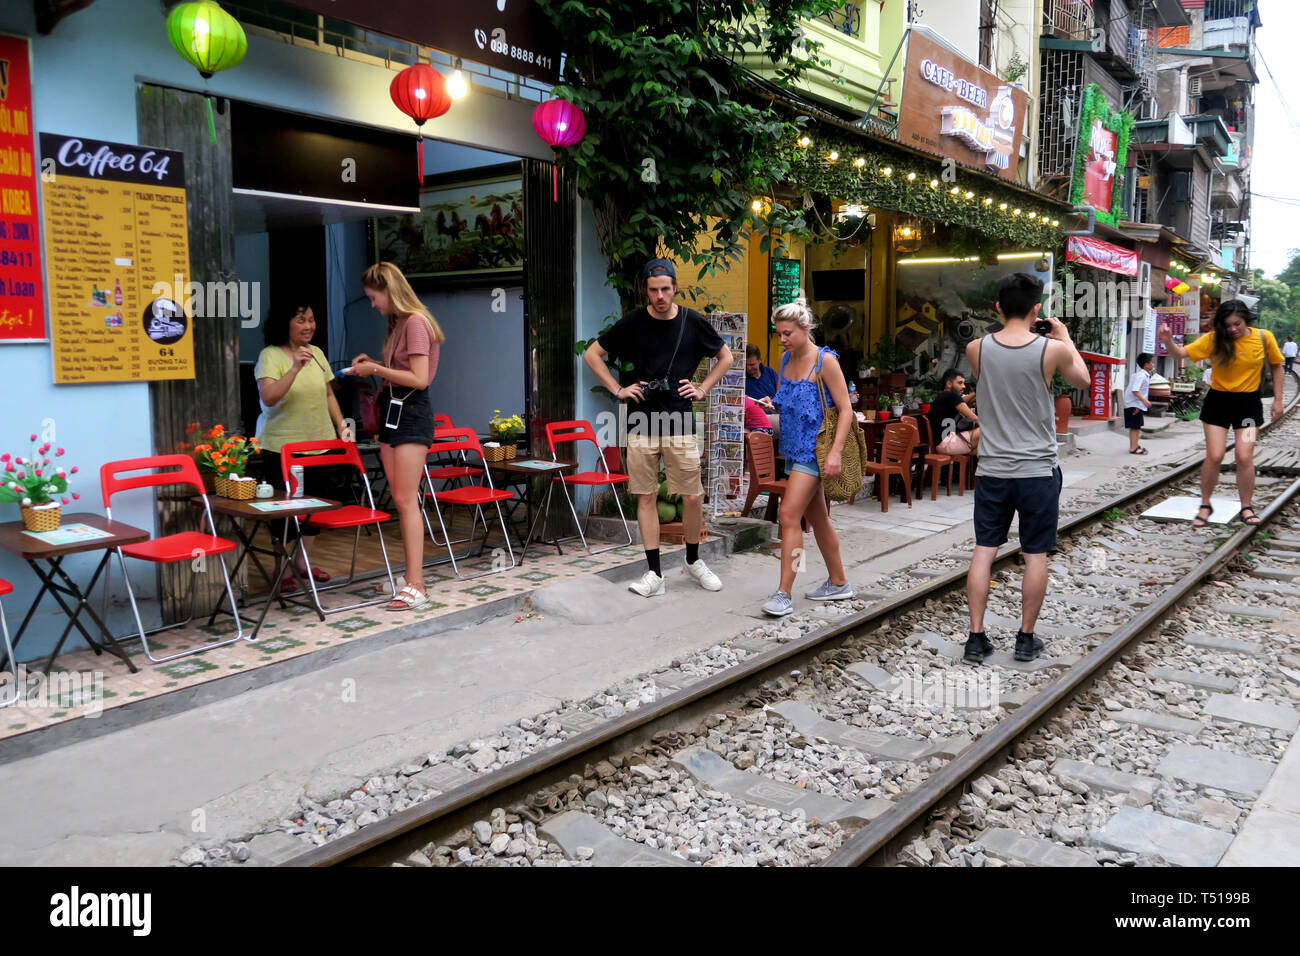 Young tourists at the railway, with cafes as a backdrop as they photograph each other on the rails Old Town, Hanoi, Vietnam - Stock Image